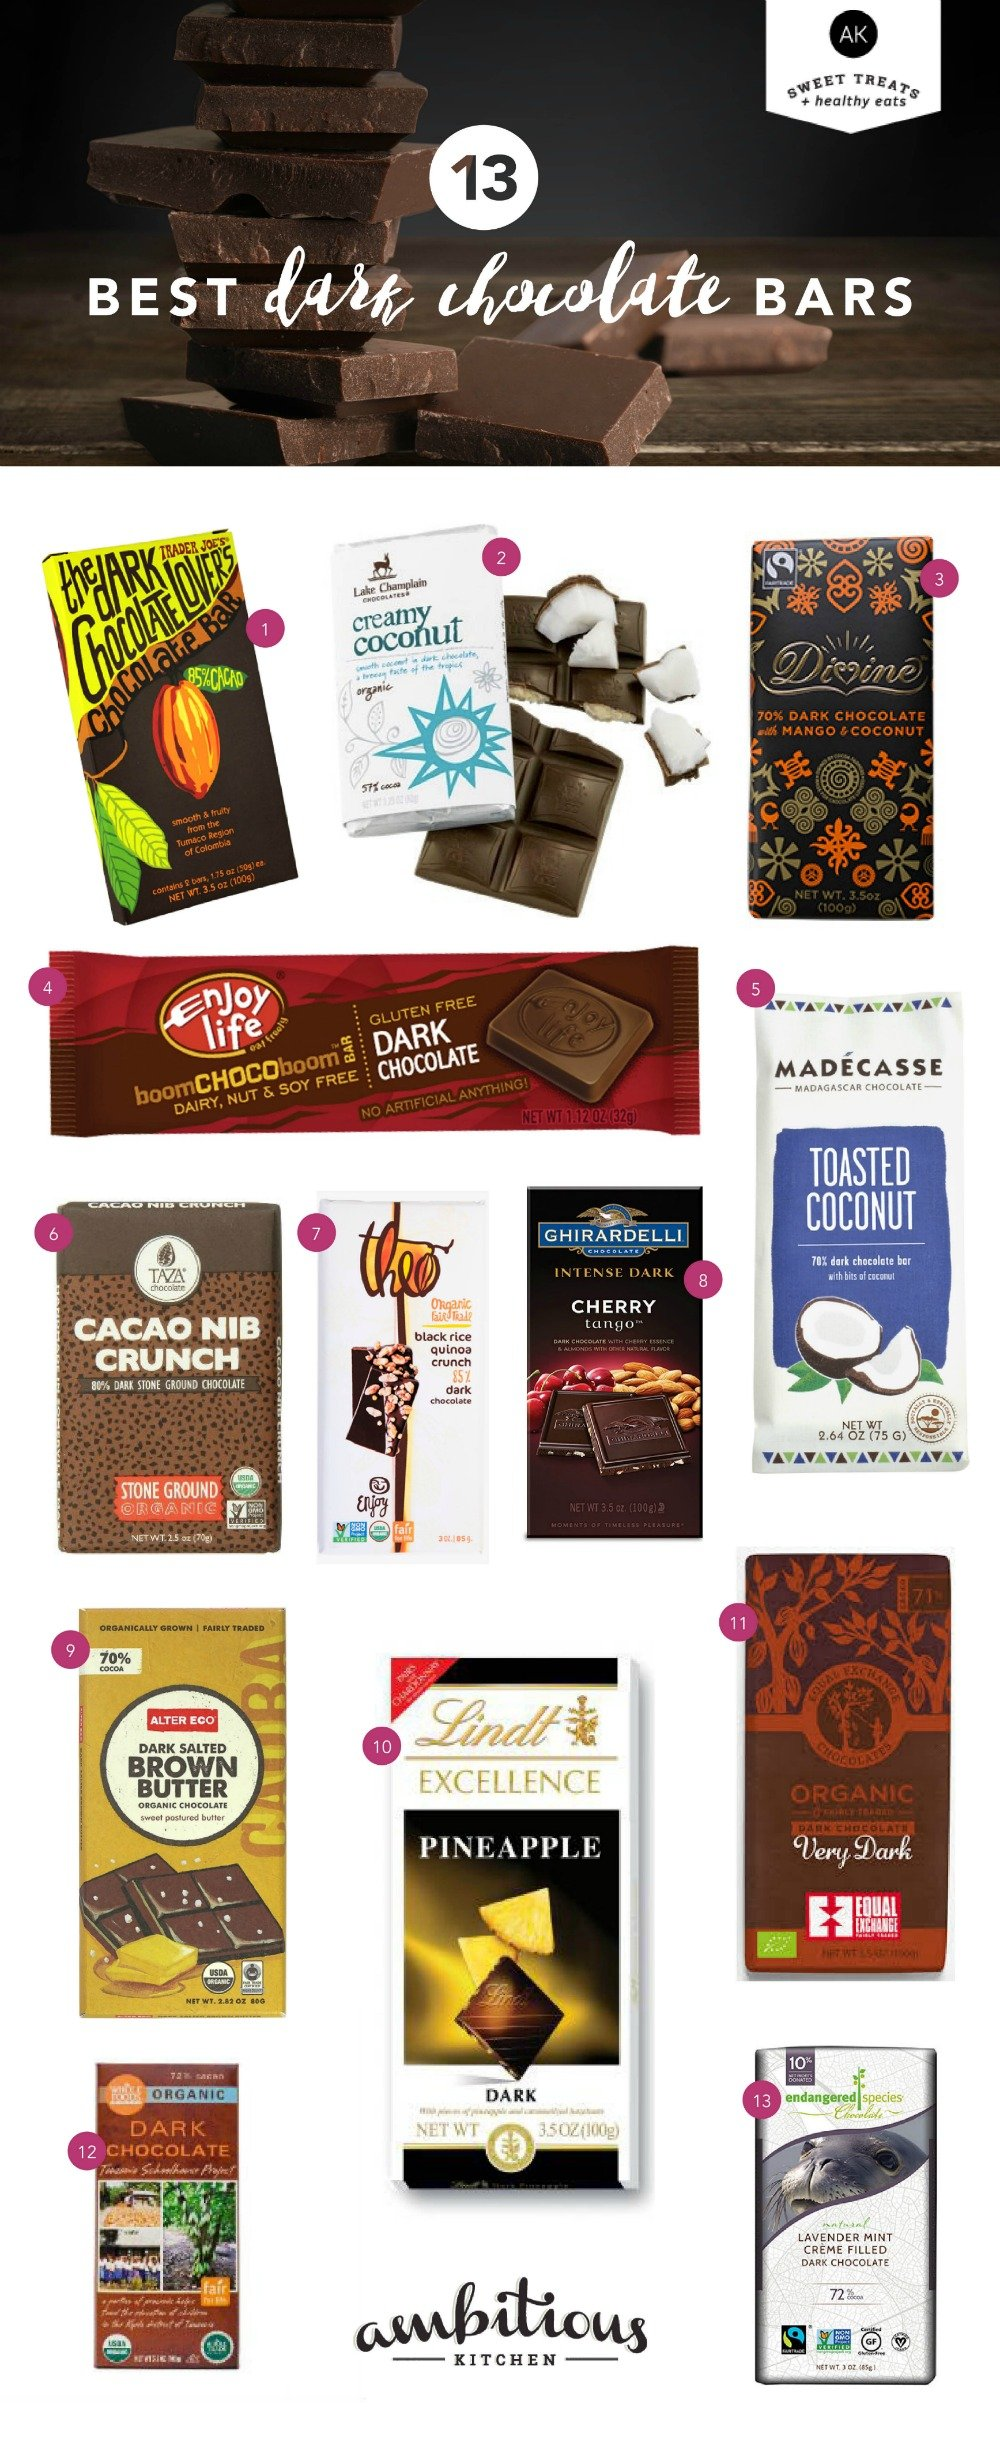 13 of the Best Dark Chocolate Bars + the health benefits of chocolate graphic